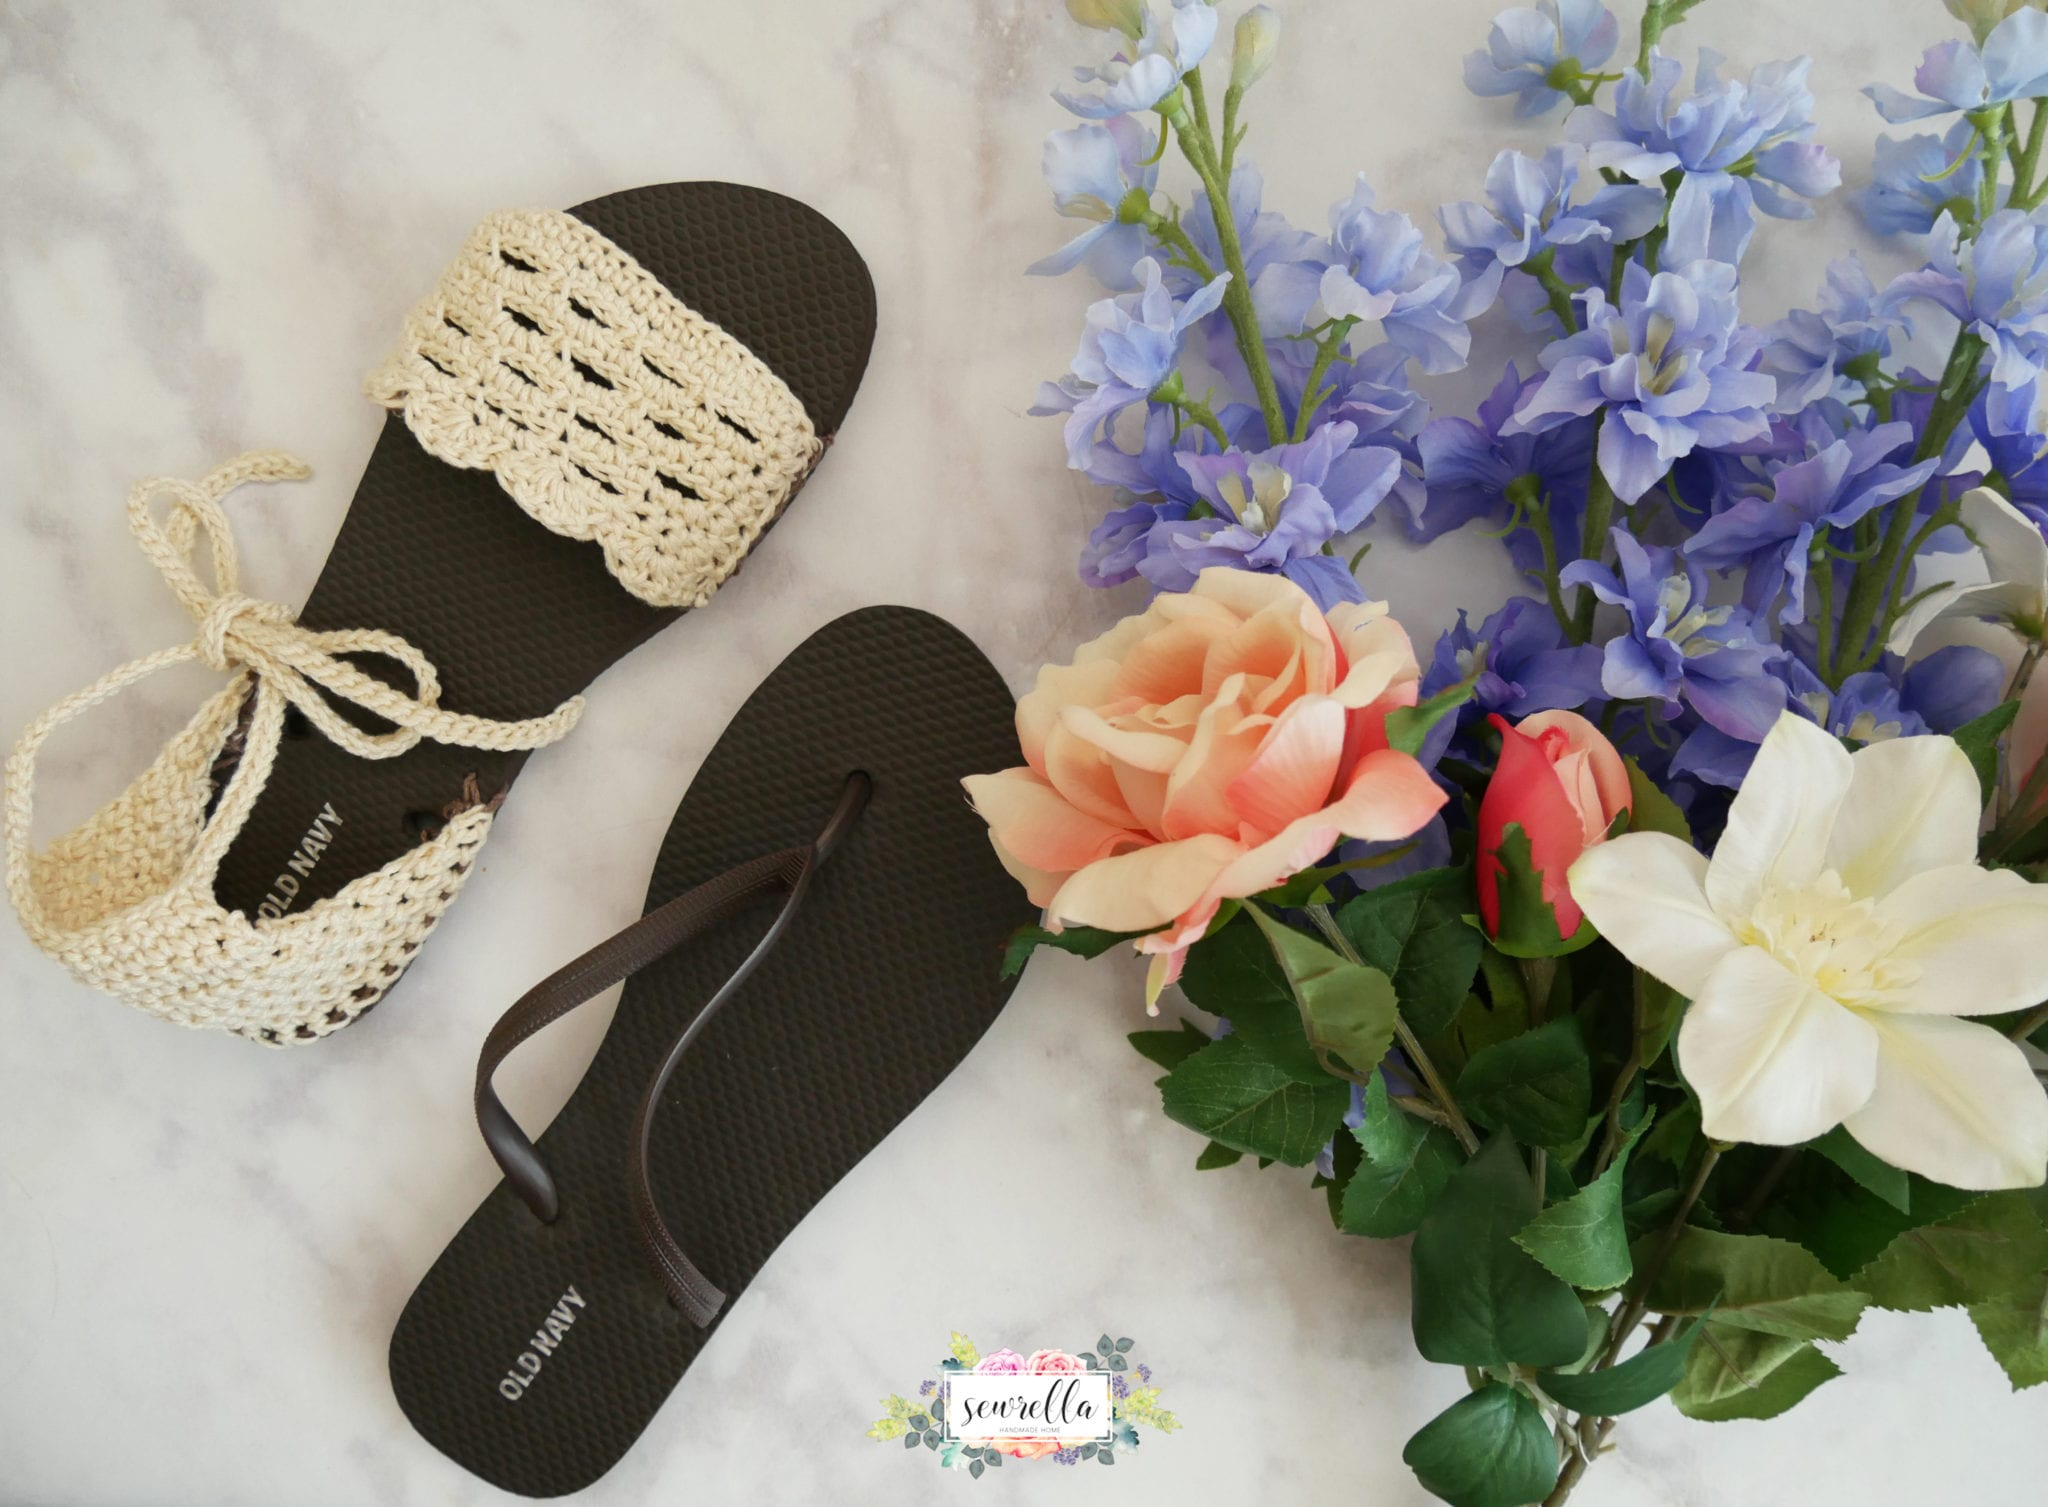 365f45e4a47b Crochet Sandals with Flip Flop Soles - Sewrella